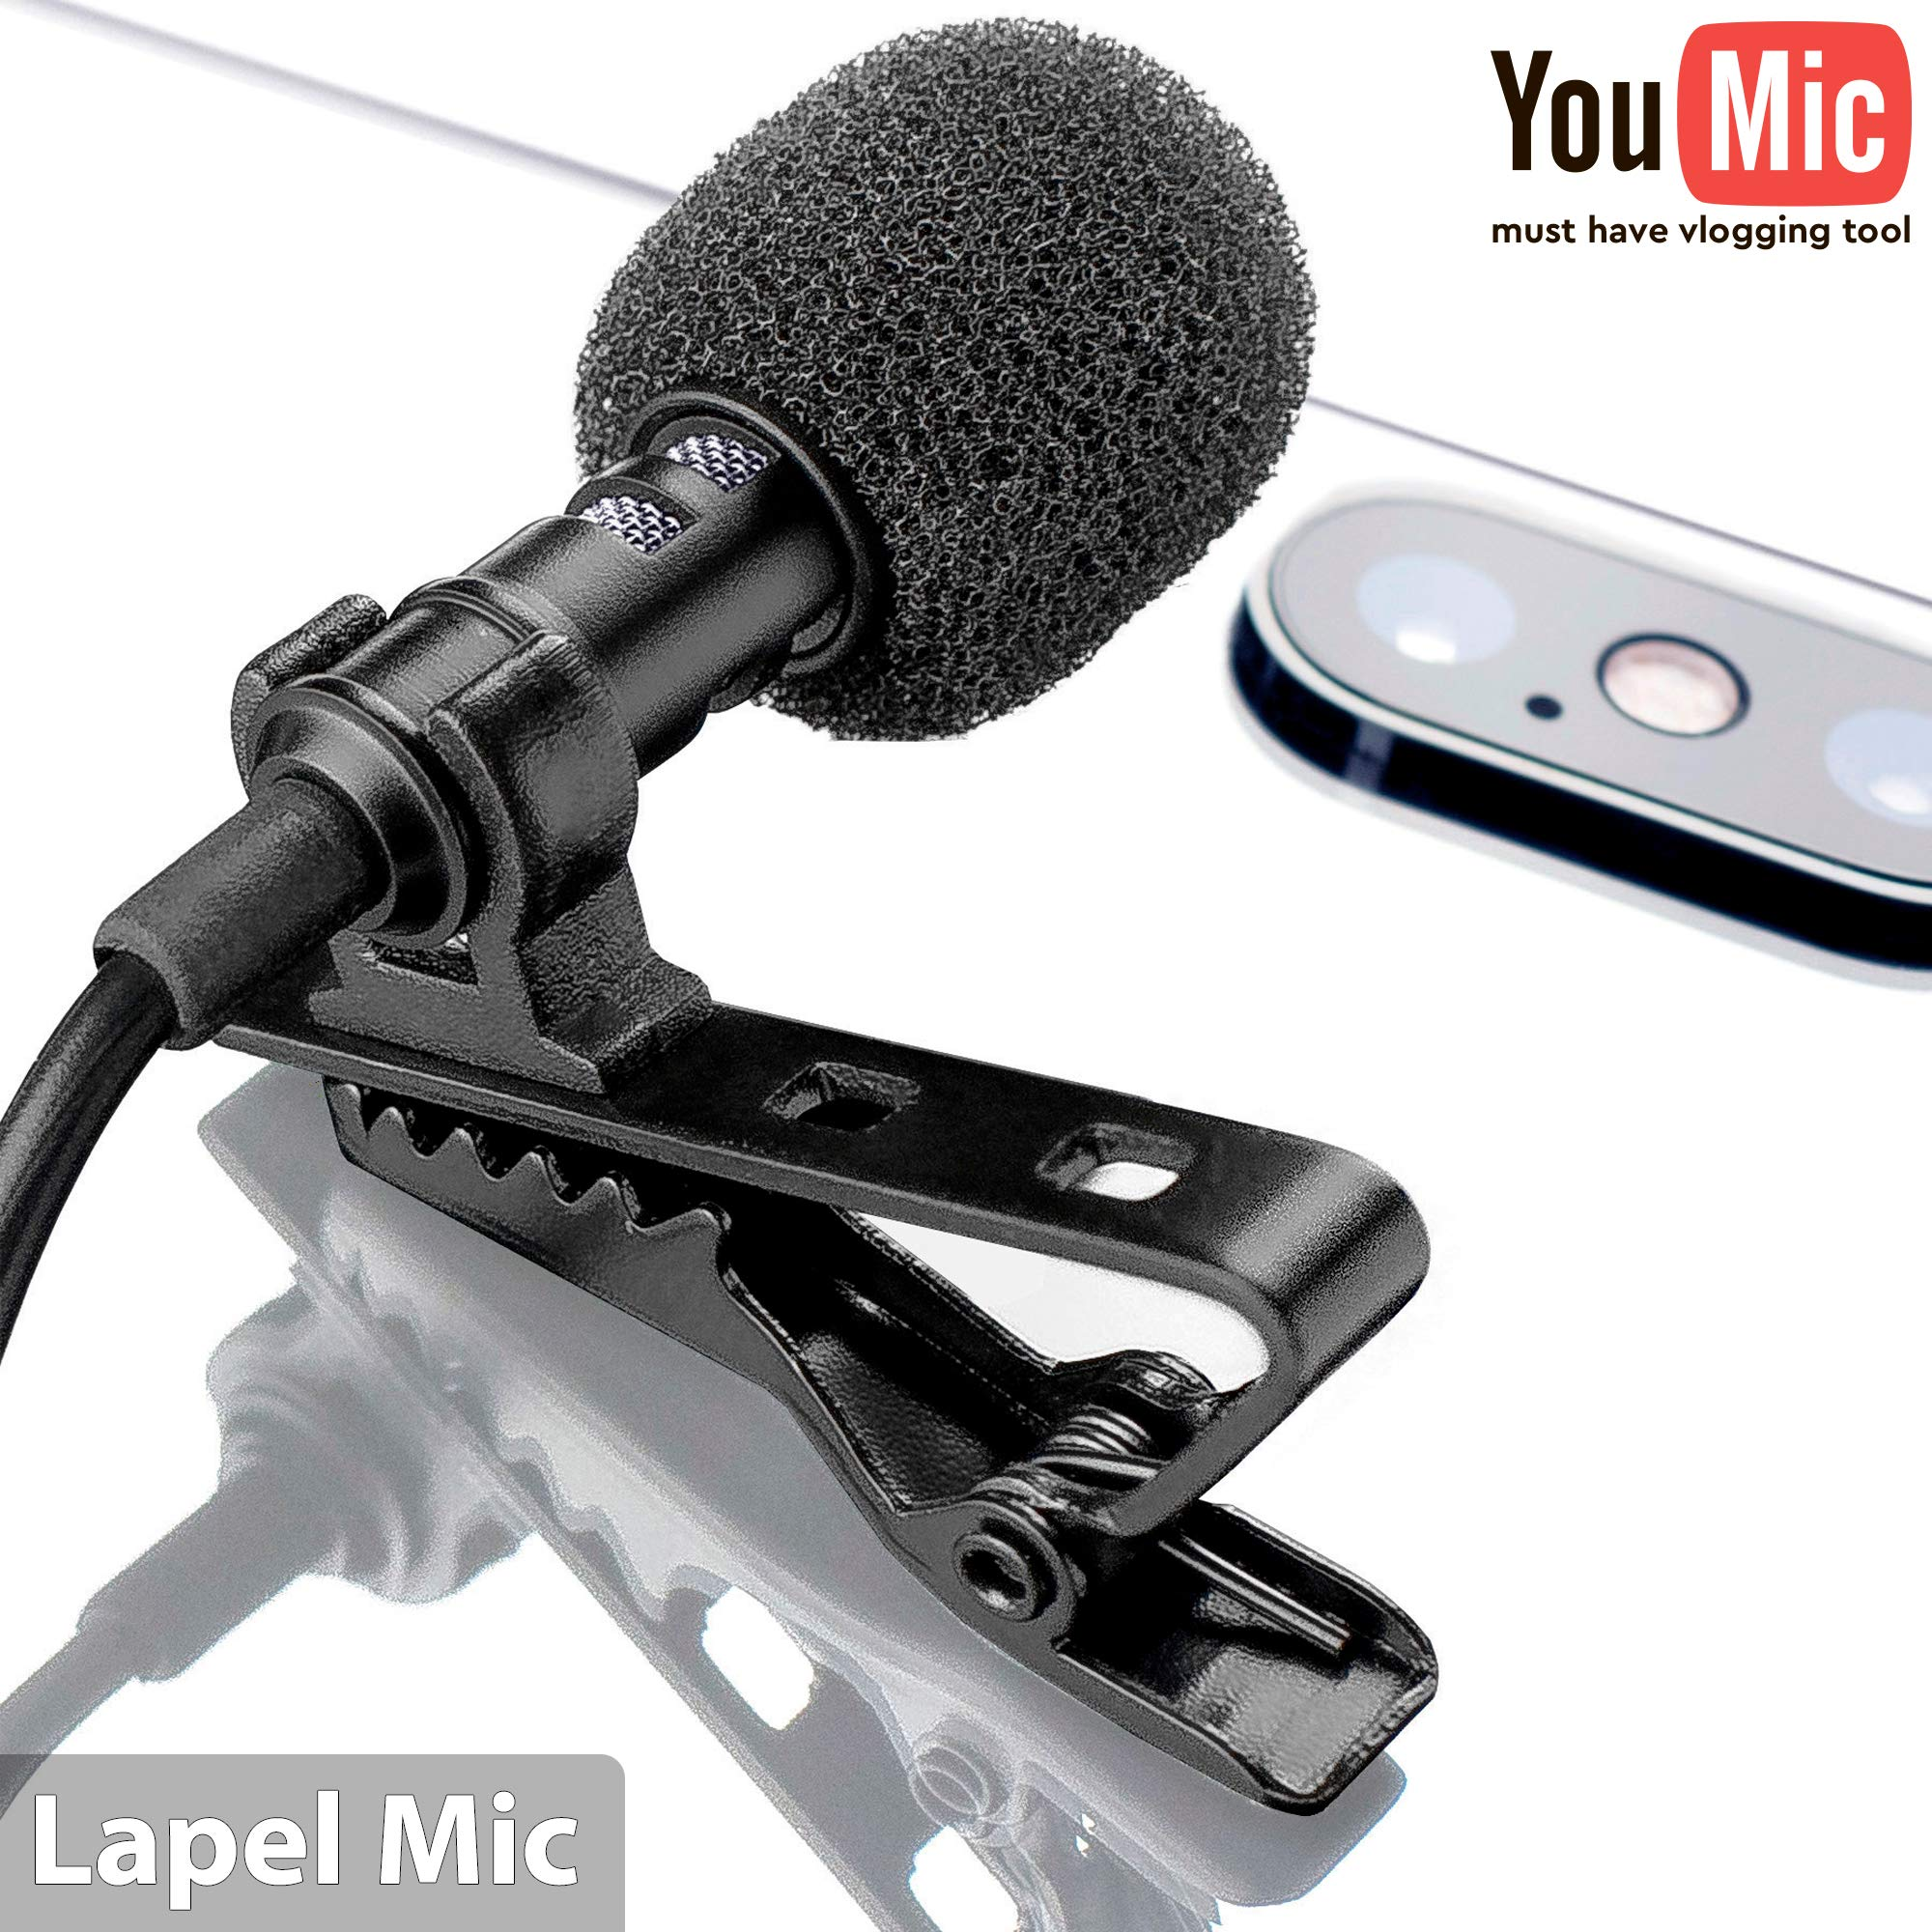 Lavalier Lapel Microphone ?? Omnidirectional Mic with Easy Clip On System ?? Perfect for Recording Youtube / Interview / Video Conference / Podcast / Voice Dictation / iPhone by YouMic